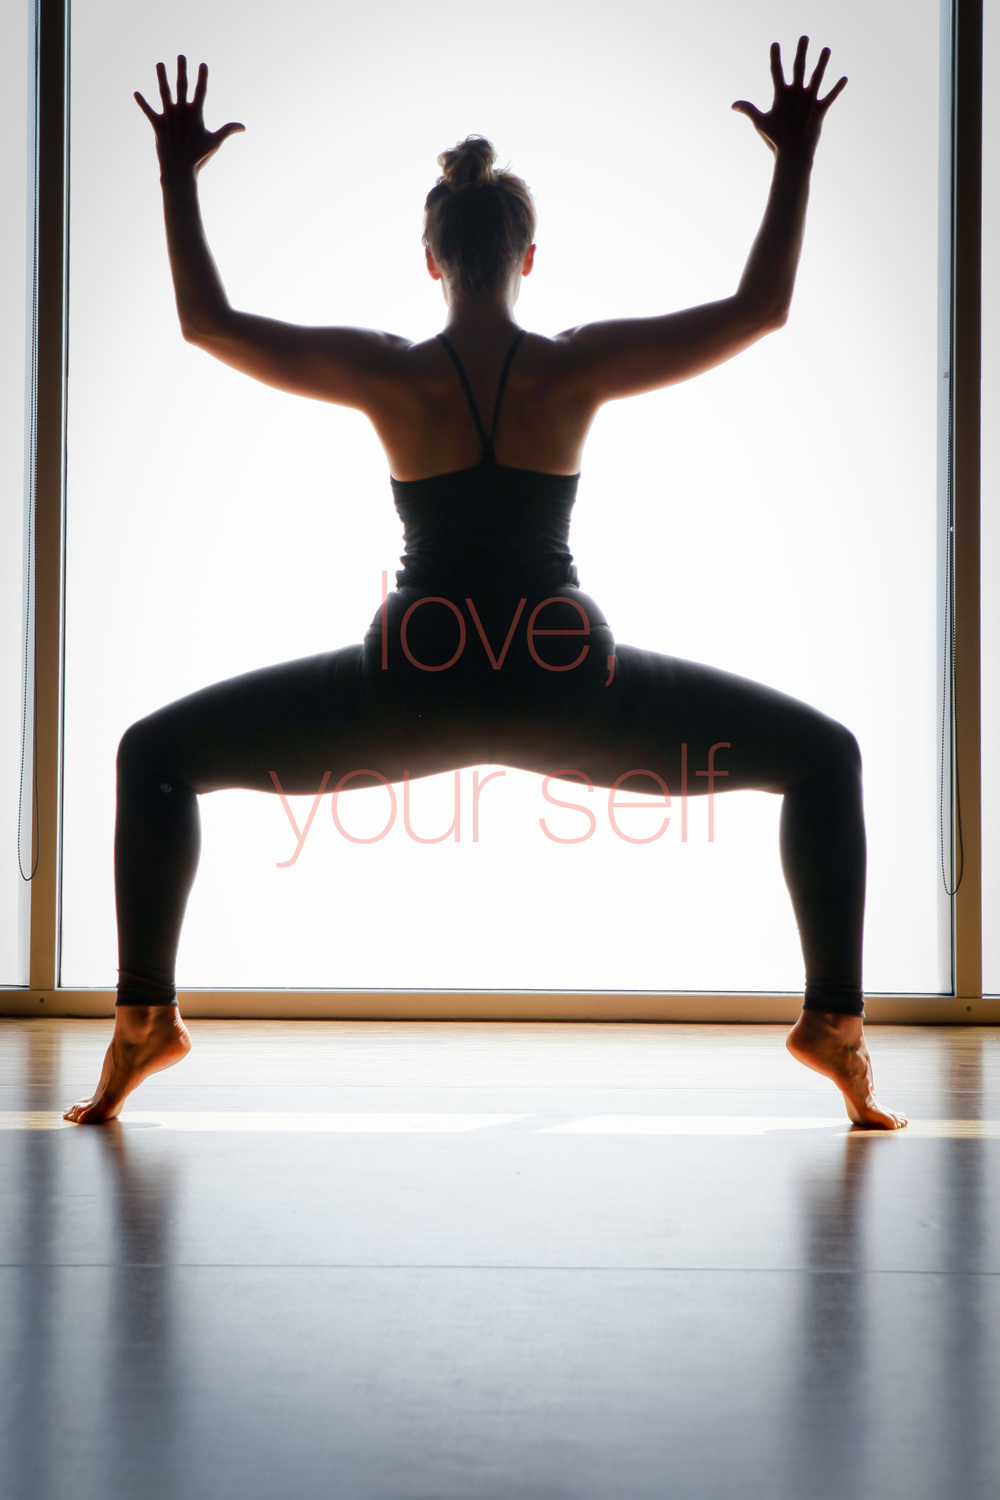 yogi inversions strength chicago yoga filtered light prime lens -0003.jpg